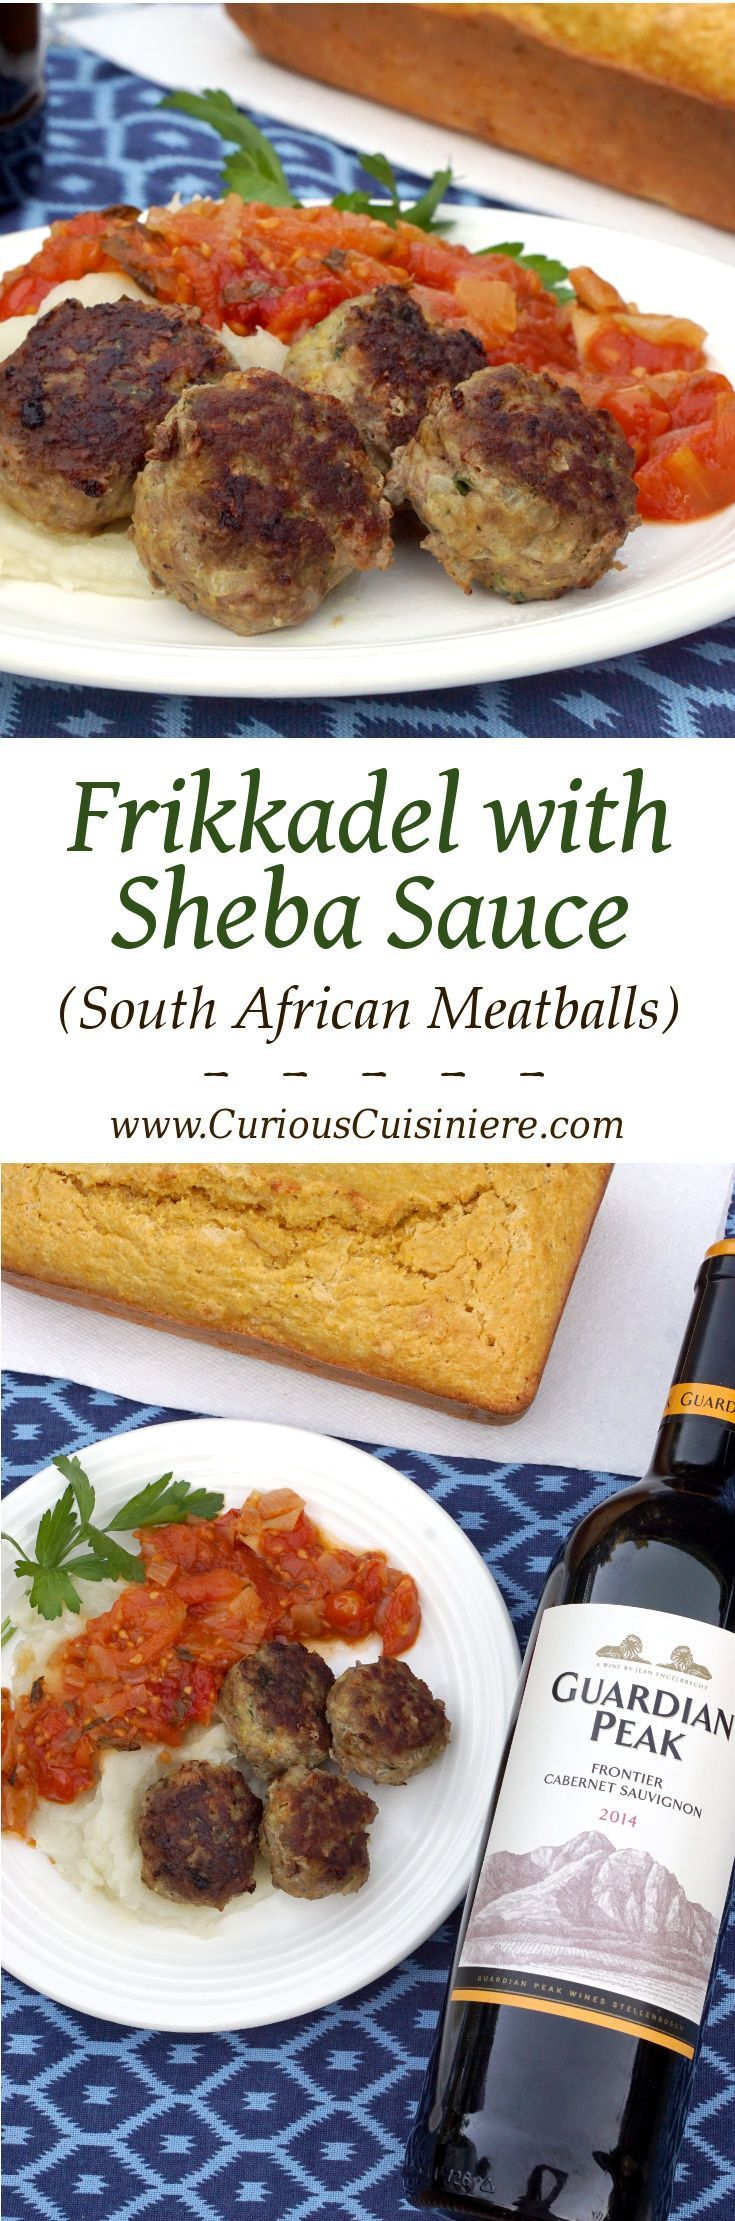 916 best south african foods images on pinterest cooking food frikkadel are a lightly spiced south african meatball that are often served with a sweet and herby tomato sauce making a wonderfully comforting dinner that forumfinder Image collections